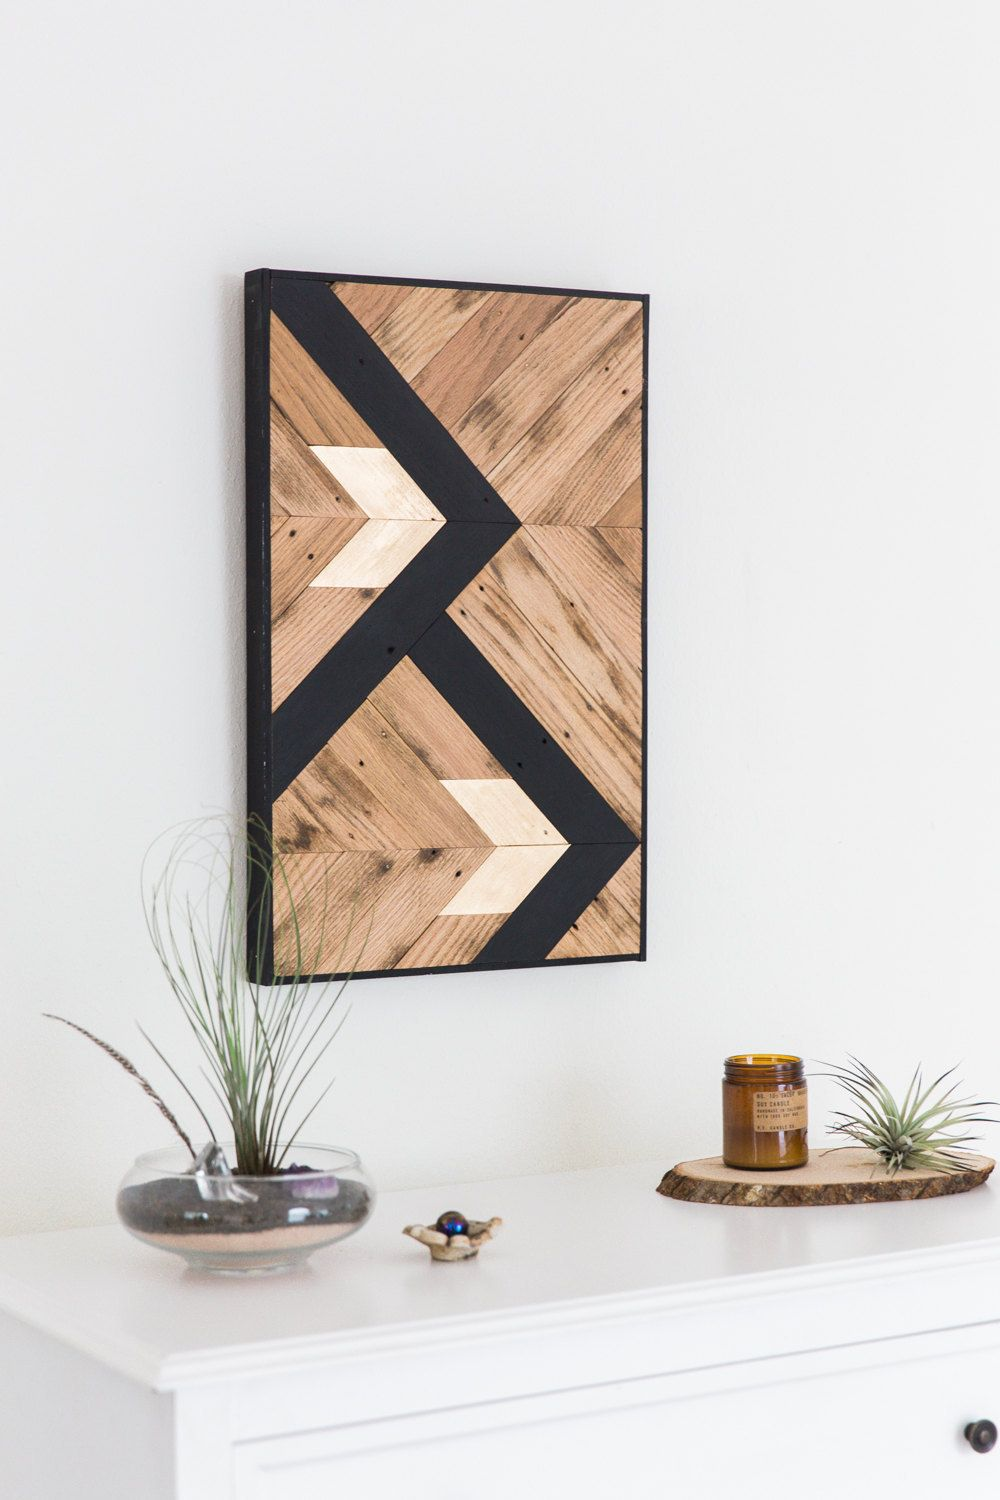 Reclaimed wood wall art black and gold arrow design wooden wall